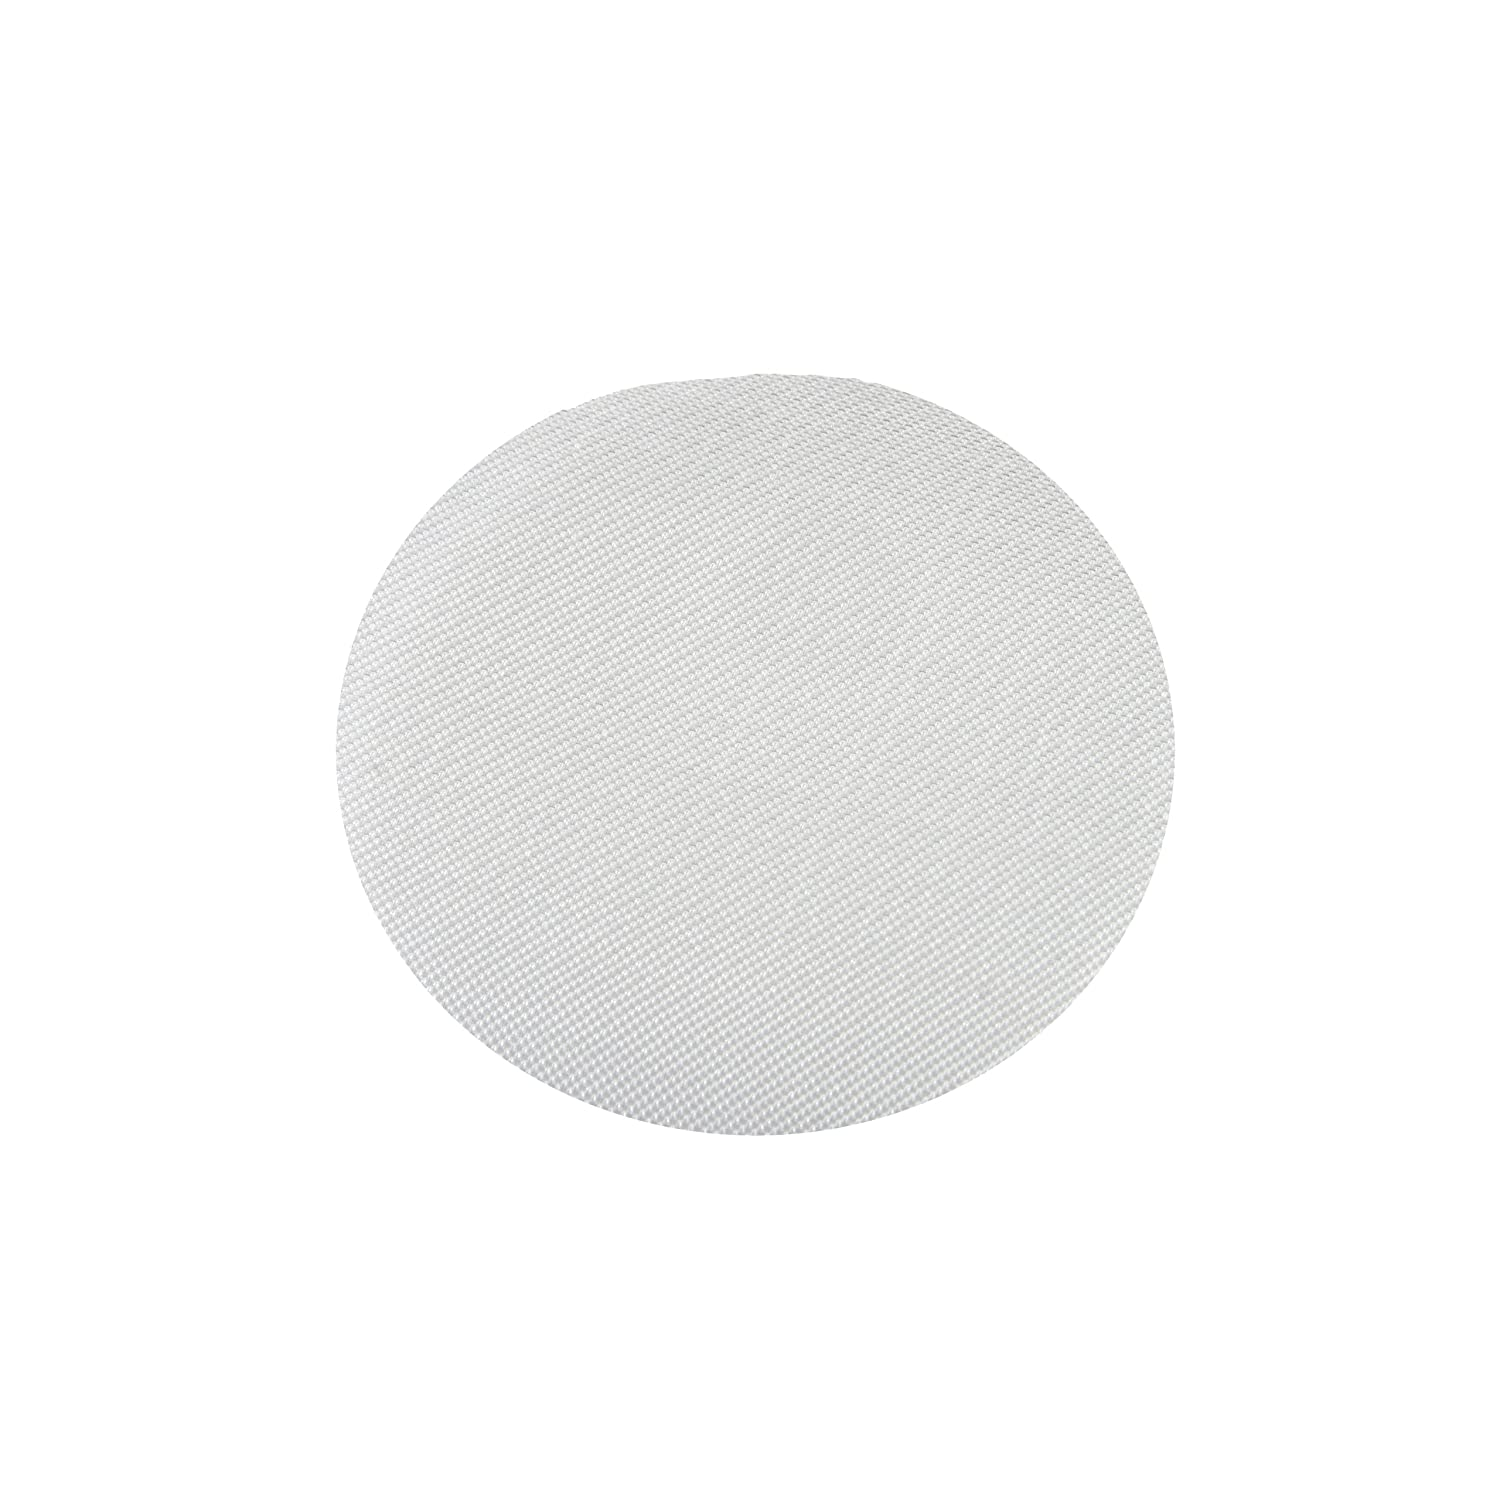 Millipore RTTP04700 White Polycarbonate Isopore Hydrophilic Membrane Filter 110mL min x sq cm Water Flow Rate 47mm Diameter 1.2 Micron Pack of 100